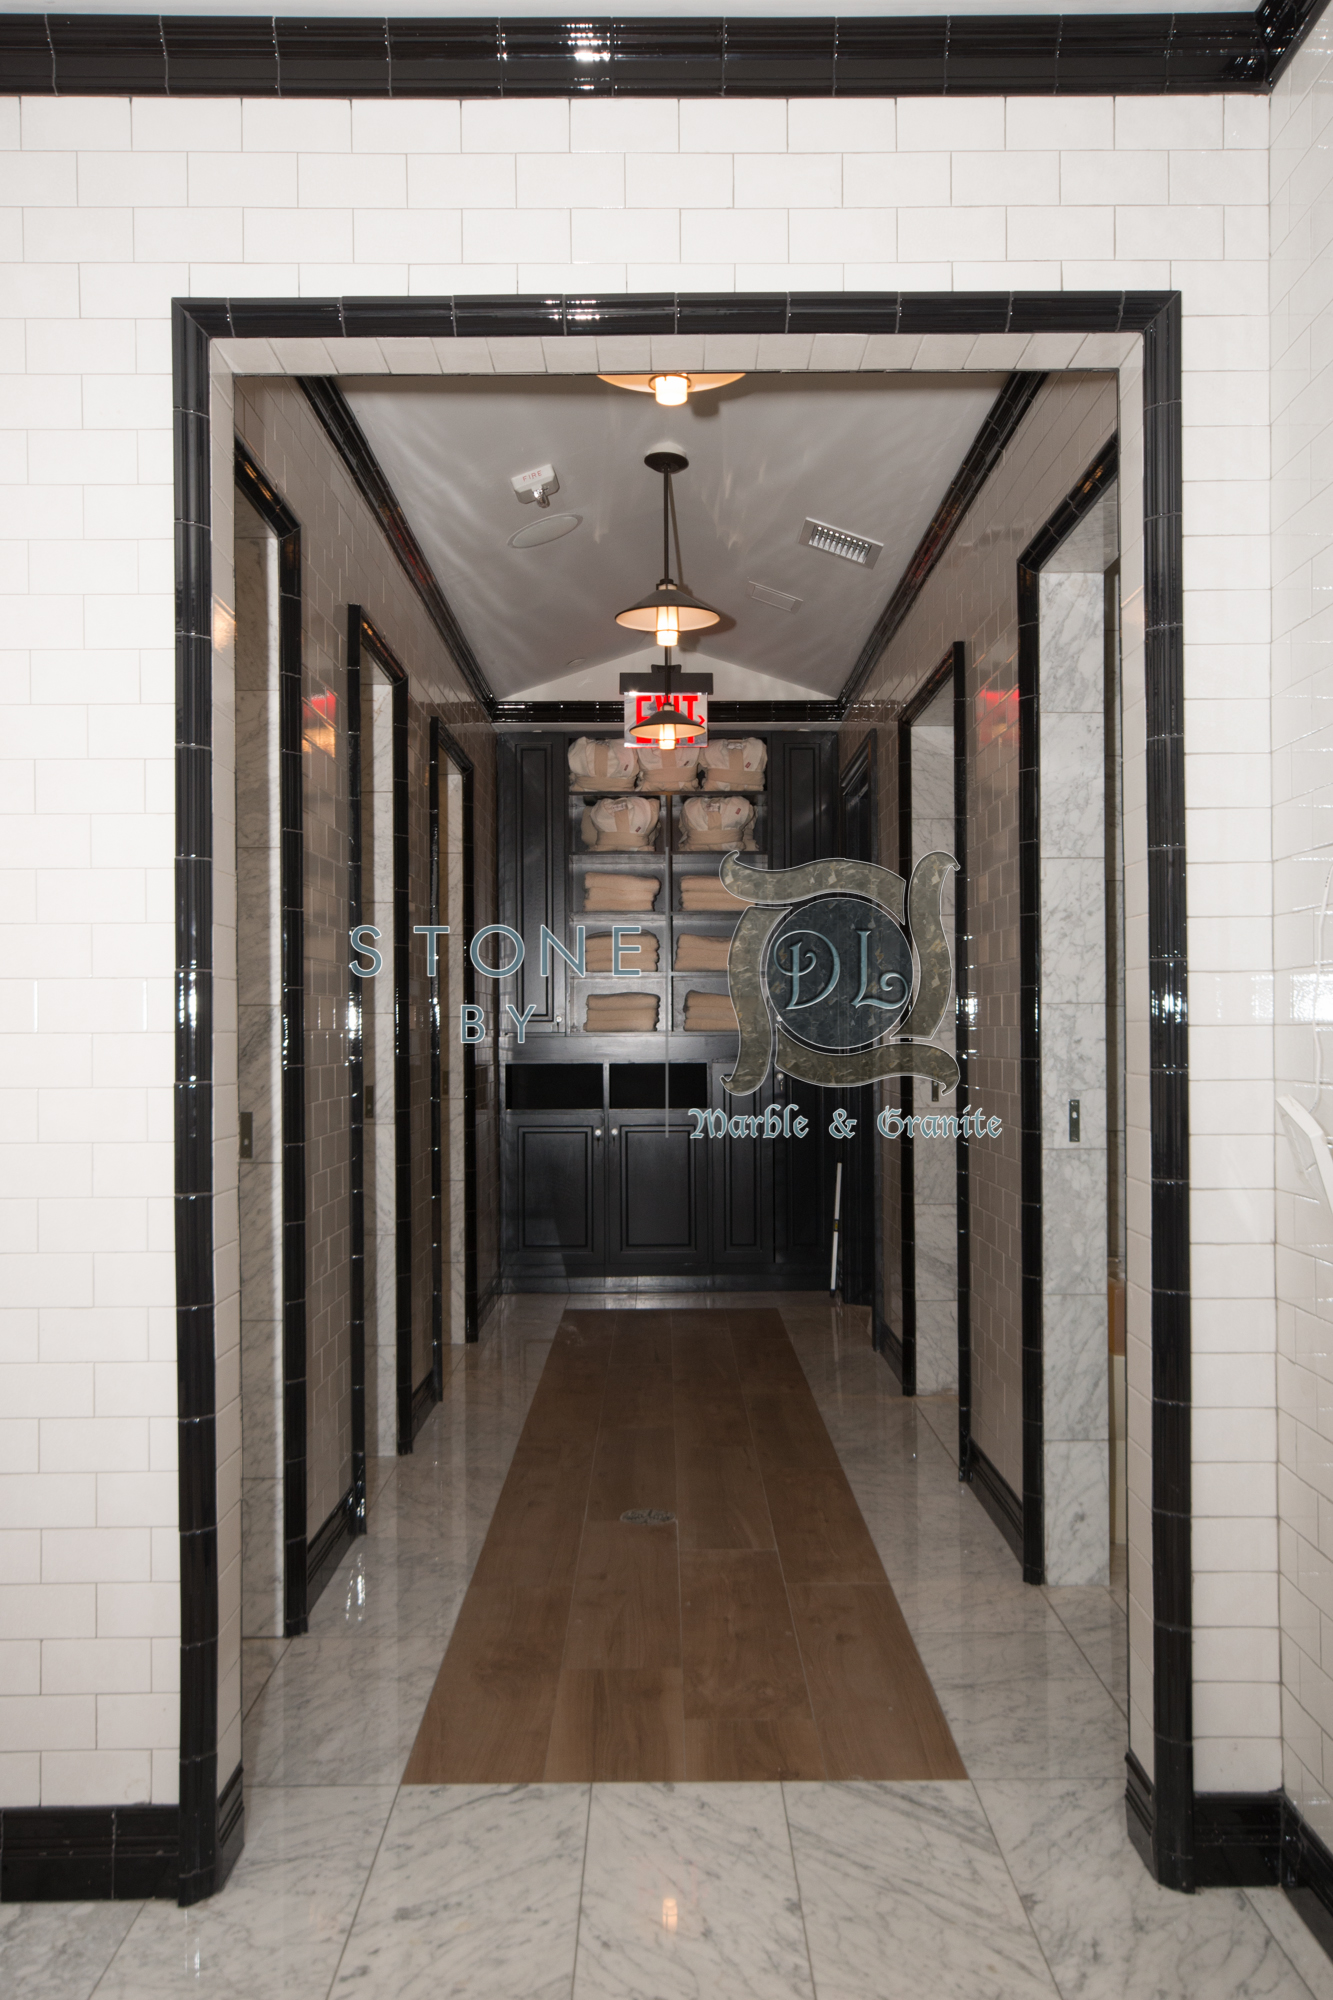 DSC_8283 - Stone by DL Marble and Granite Inc. Elizabeth Arden - Red Door Spa - 200 Park Avenue South - New York.jpg